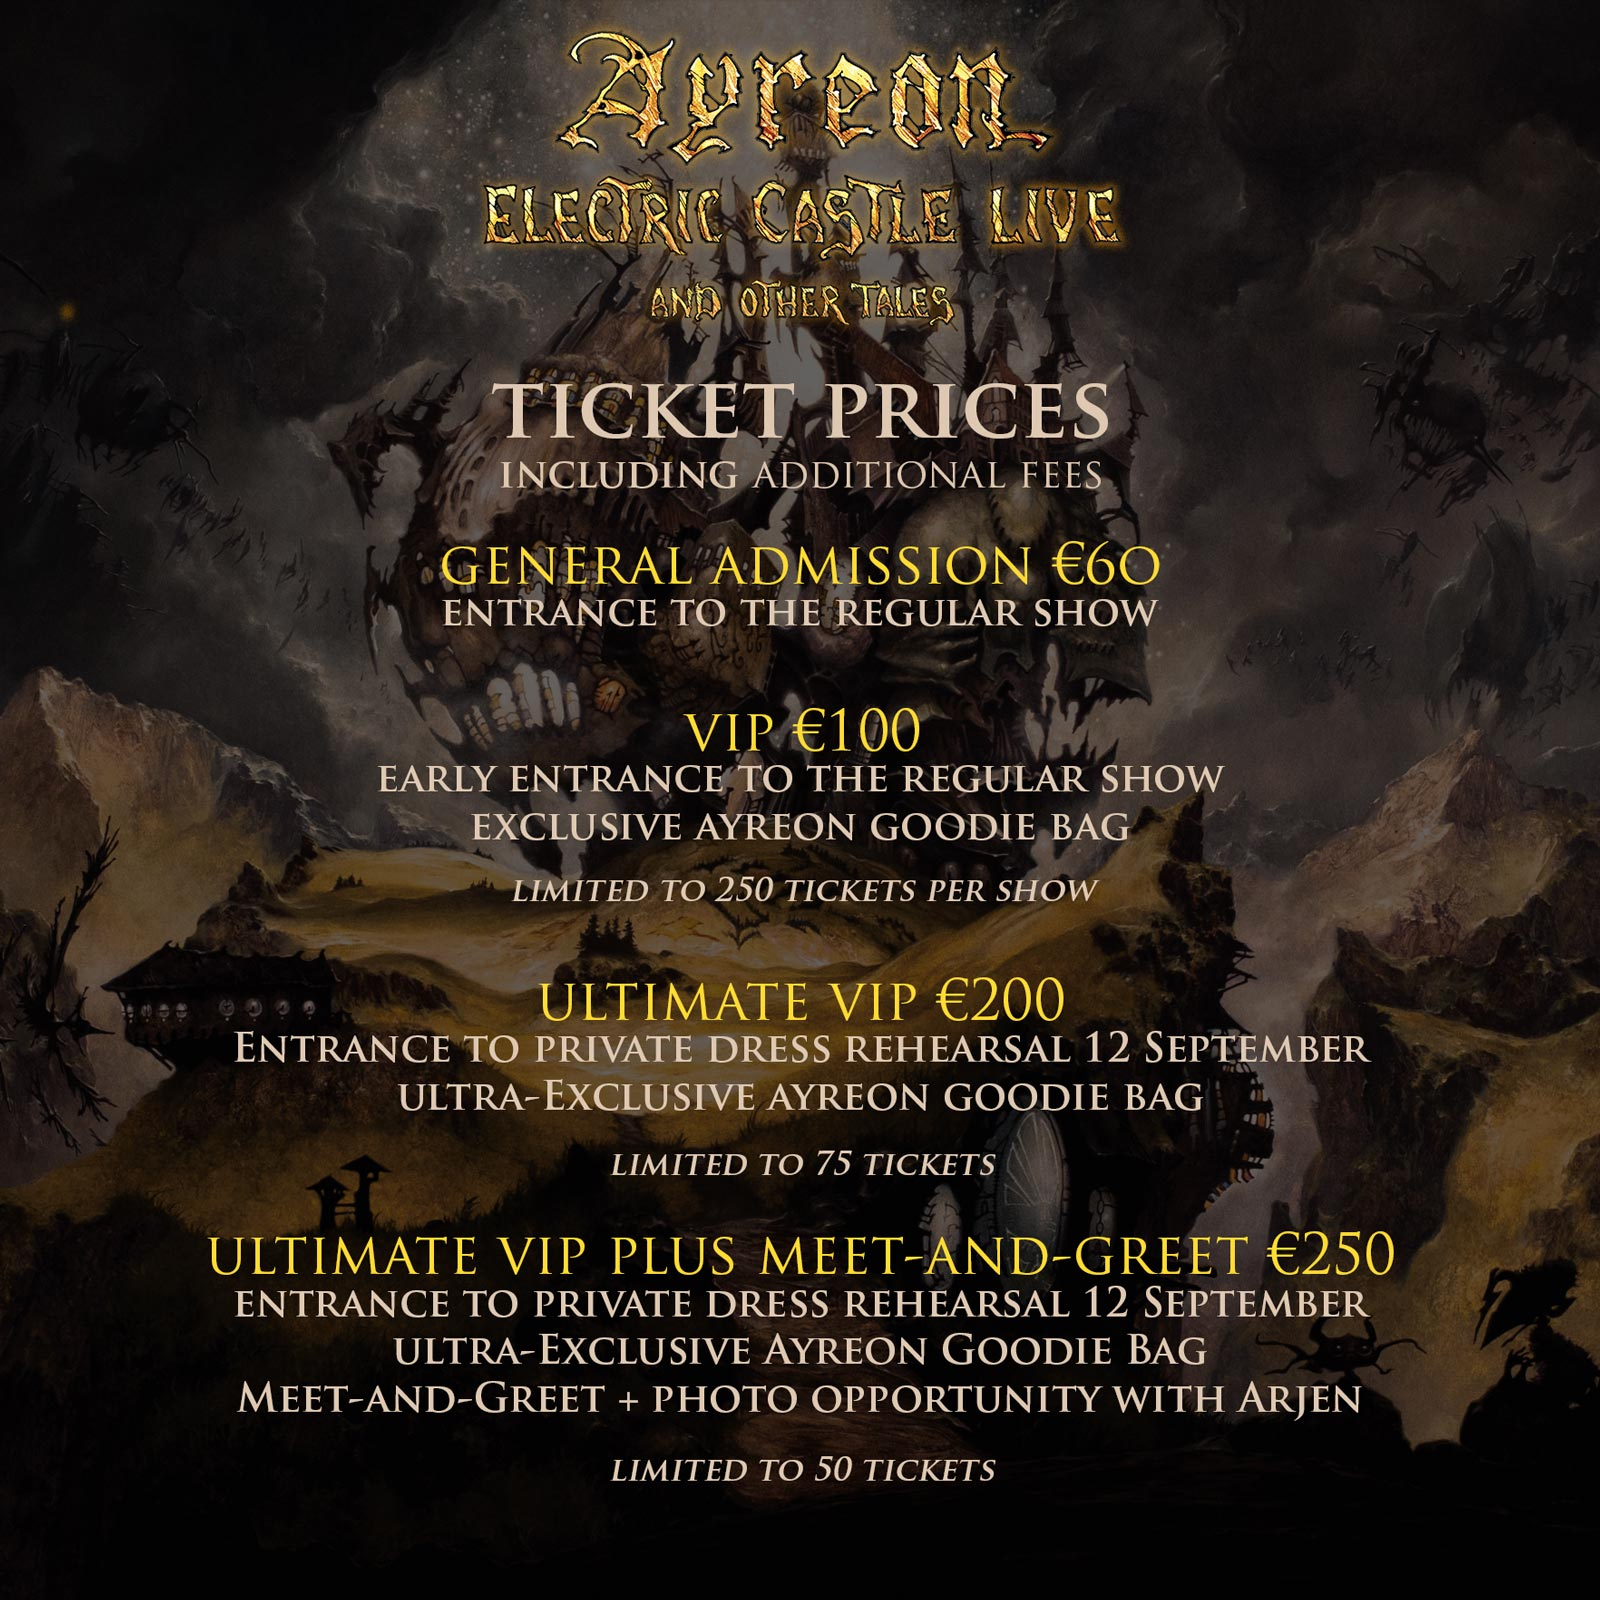 Electric Castle Live and other stories ticket info